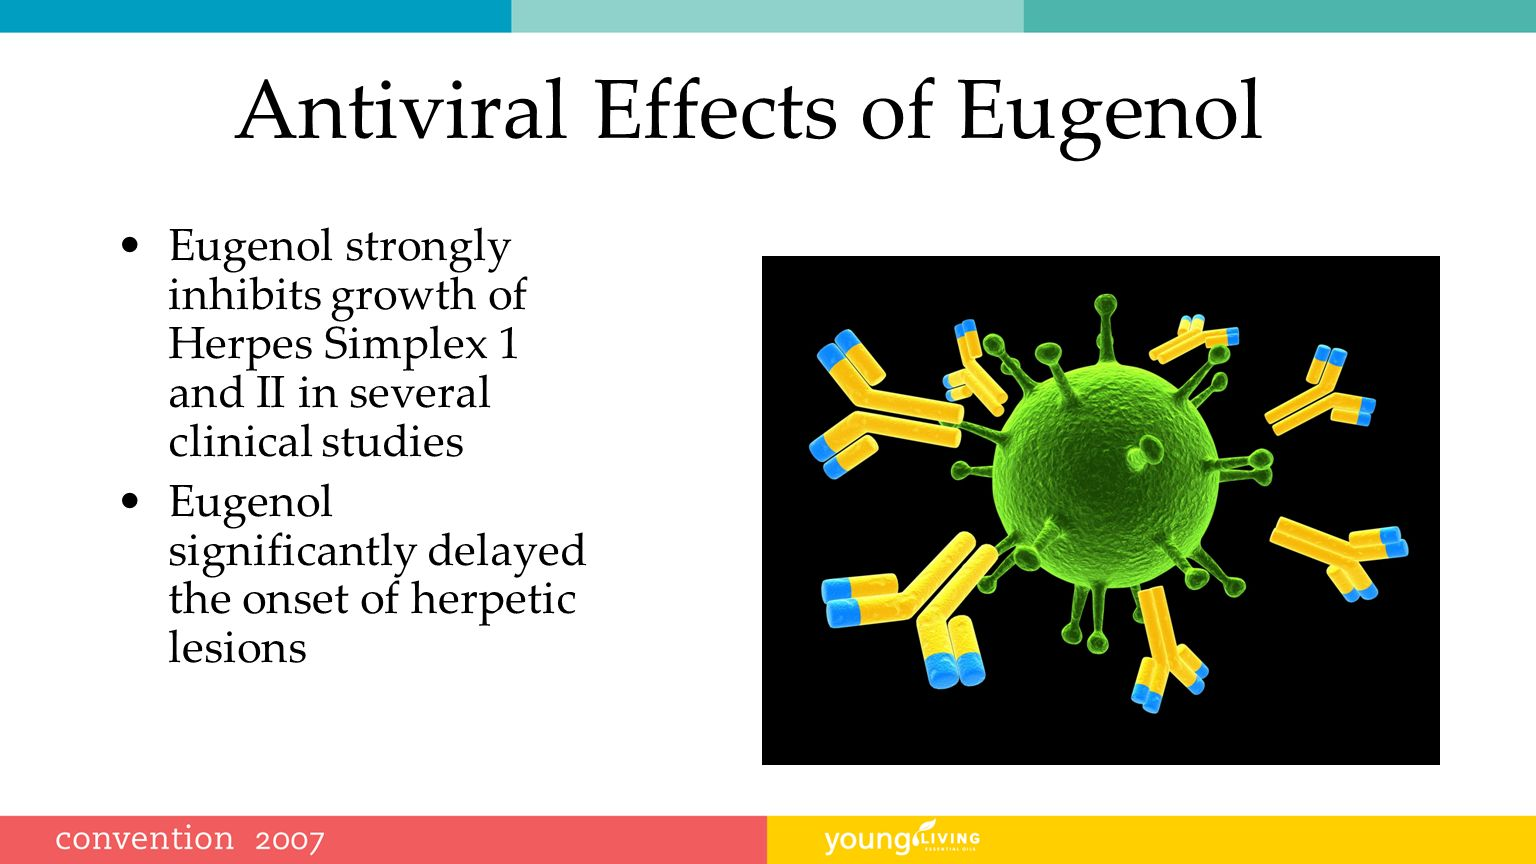 Antiviral Effects of Eugenol